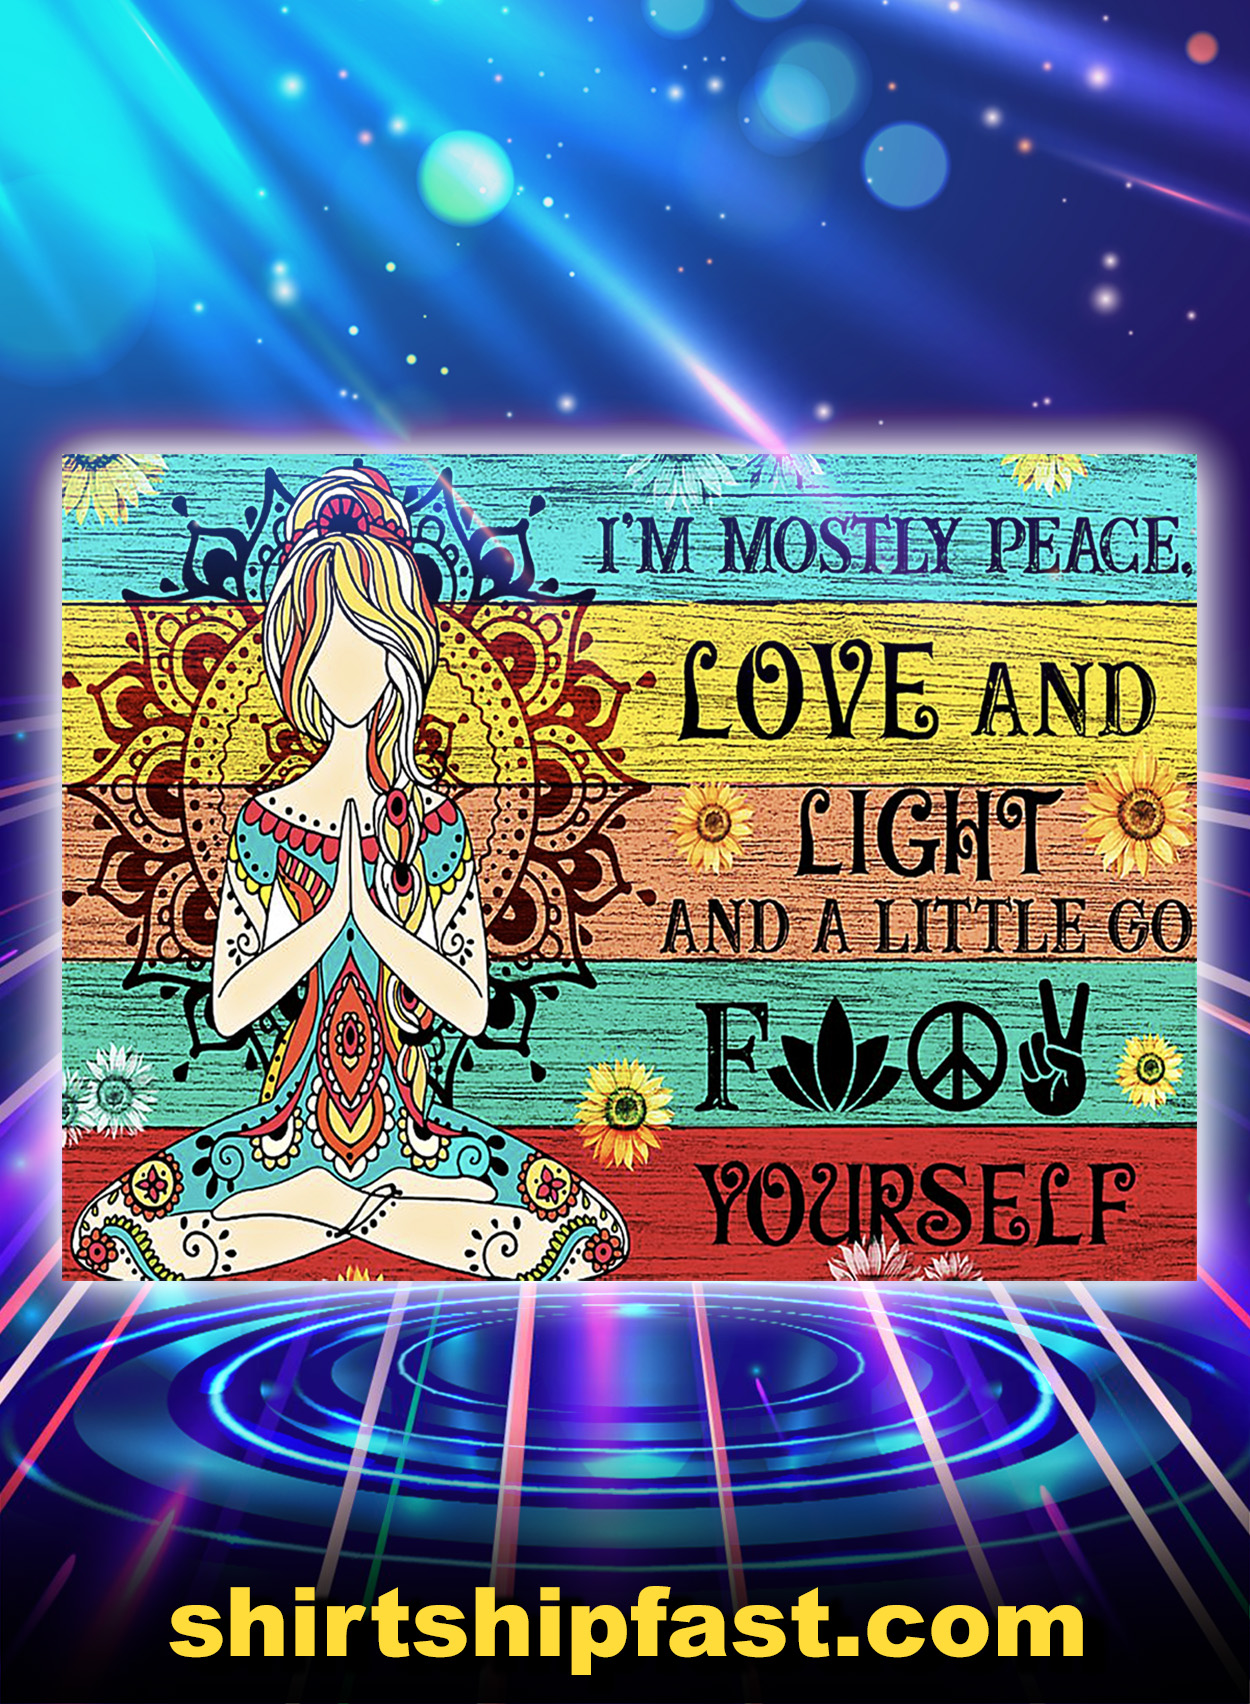 Yoga meditation I'm mostly peace love and light poster - A2